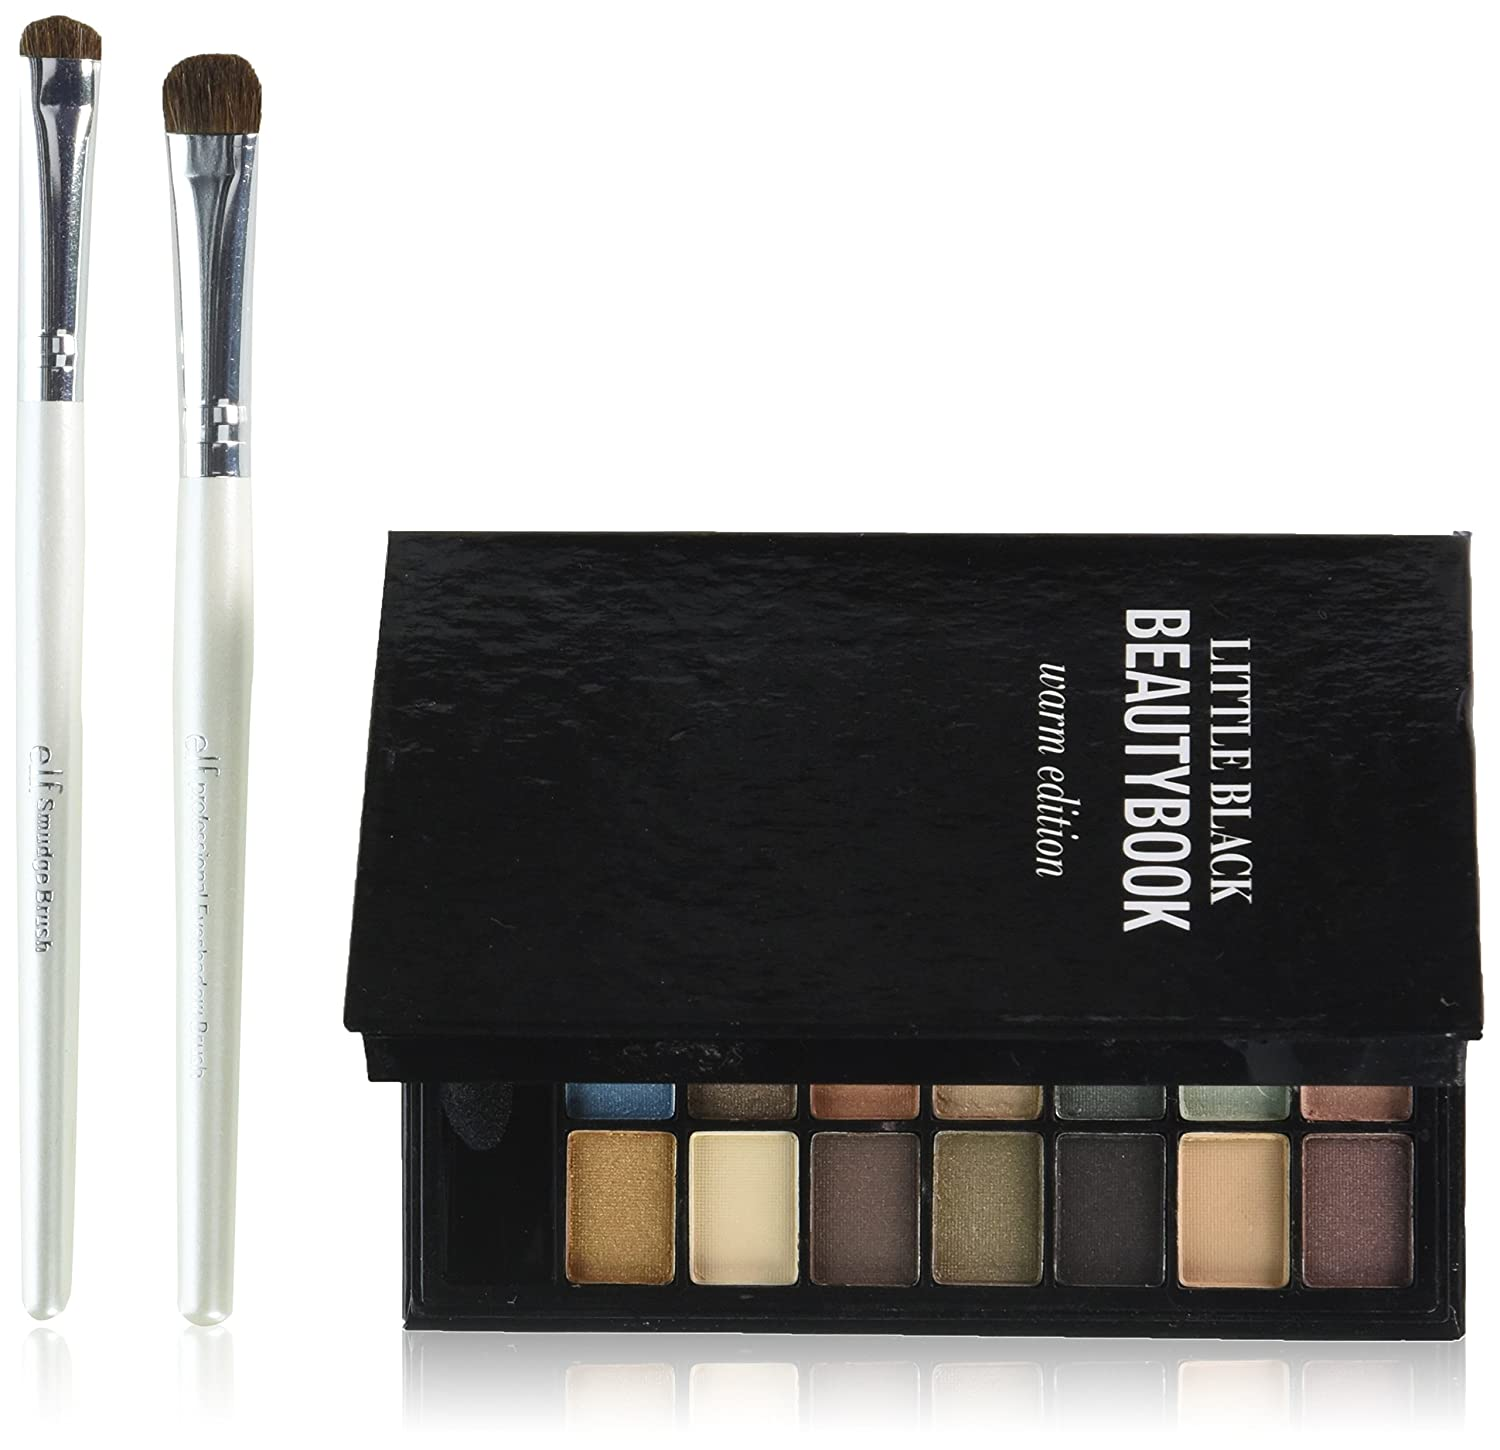 e.l.f. Cosmetics Little Black Beauty Book, Includes 48 Silky Eyeshadows and Two Brushes, Great for Travel